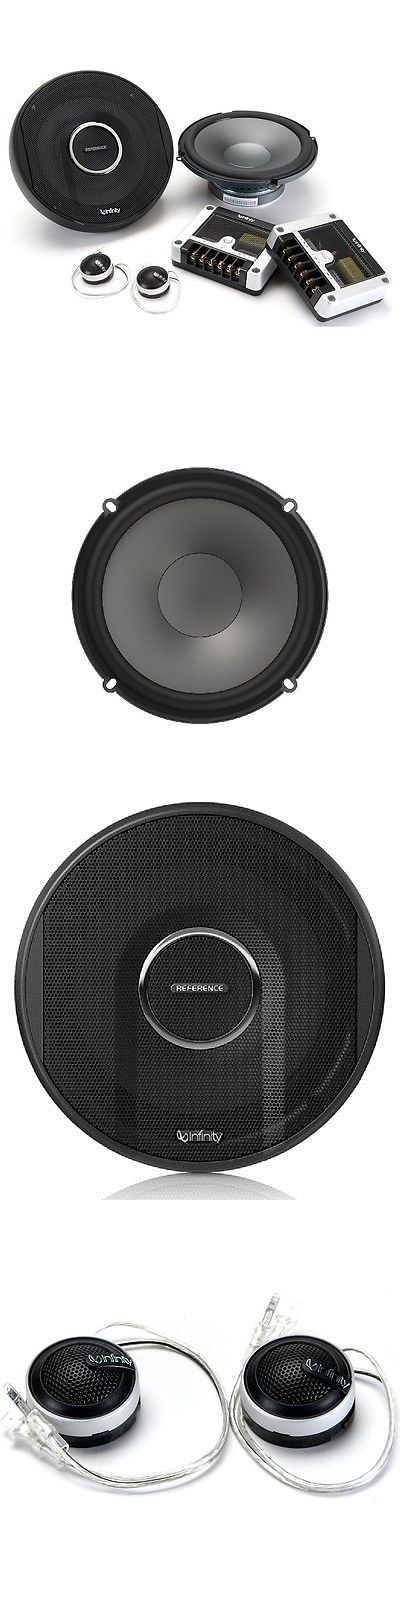 Car Speakers and Speaker Systems: Infinity Reference 6500Cx 6-1/2 (165Mm) Two-Way Car Audio Component Loudspeaker BUY IT NOW ONLY: $90.85